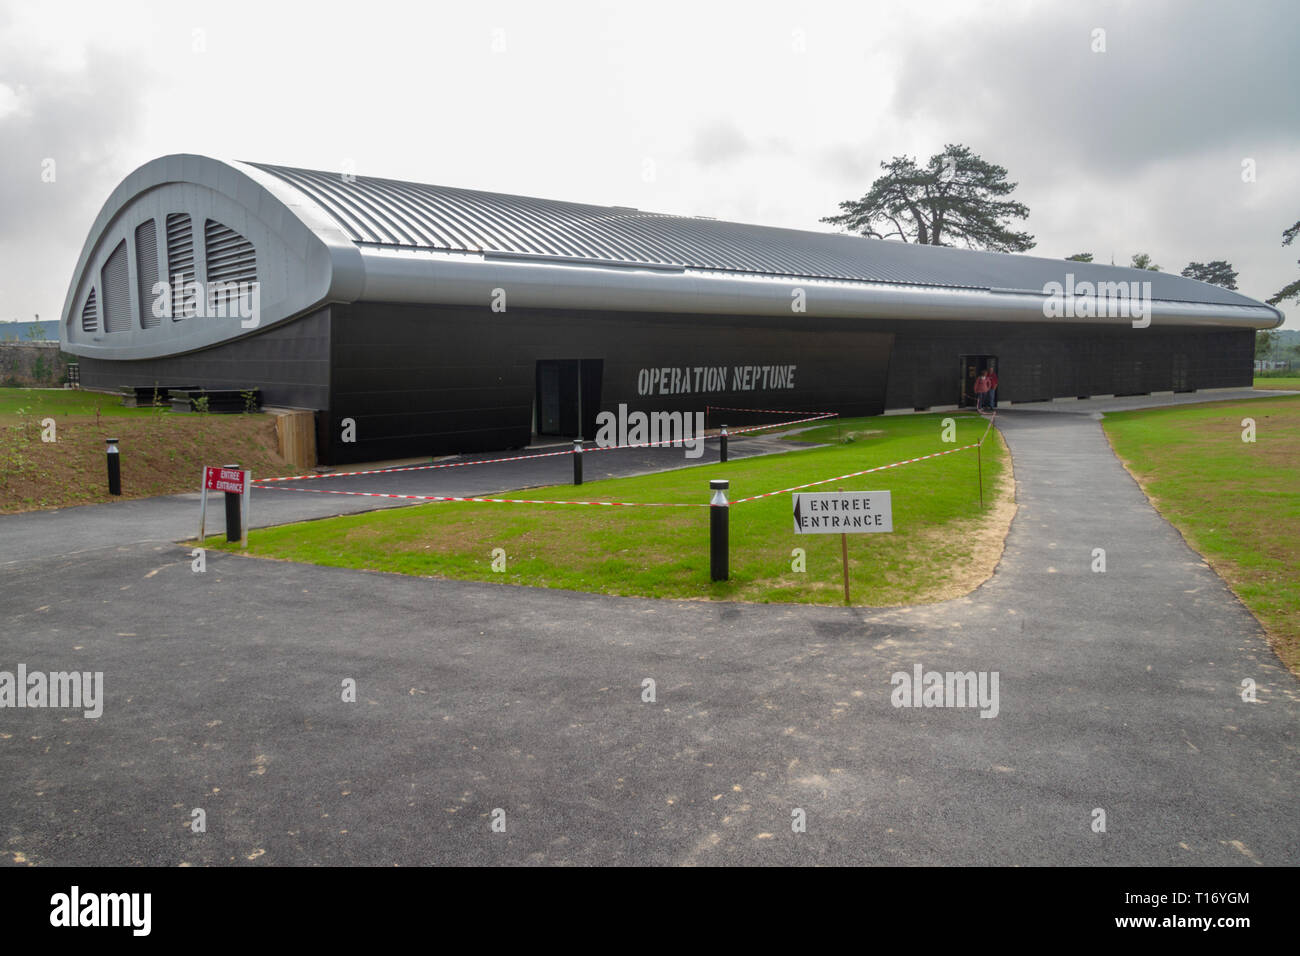 External view of the Operation Neptune exhibition in The Airborne Museum, Sainte-Mère-Eglise, Normandy, France. - Stock Image